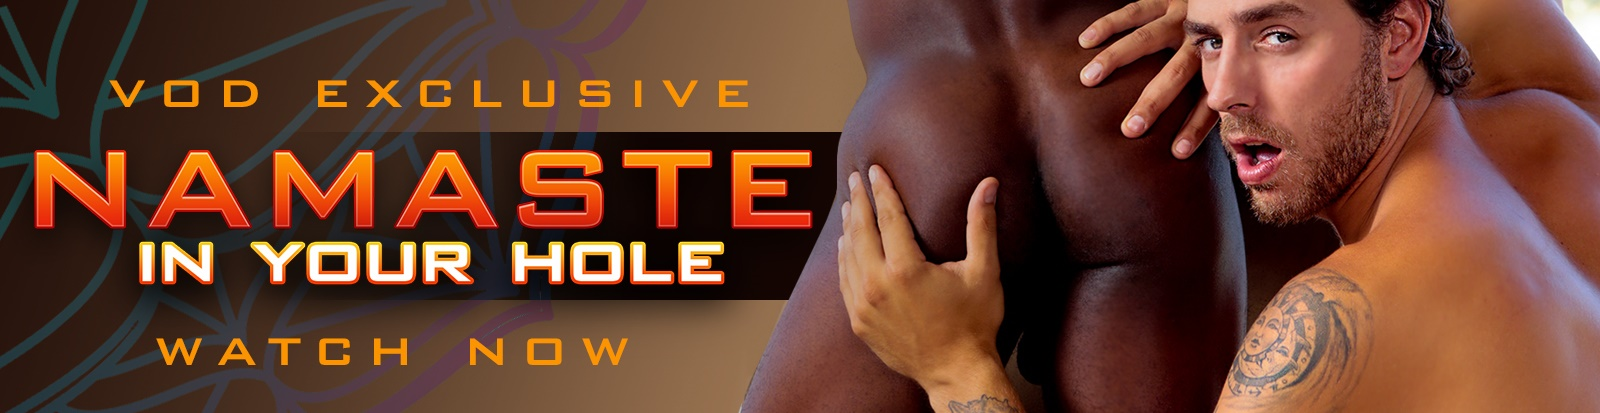 Namaste In Your Hole VOD Exclusive